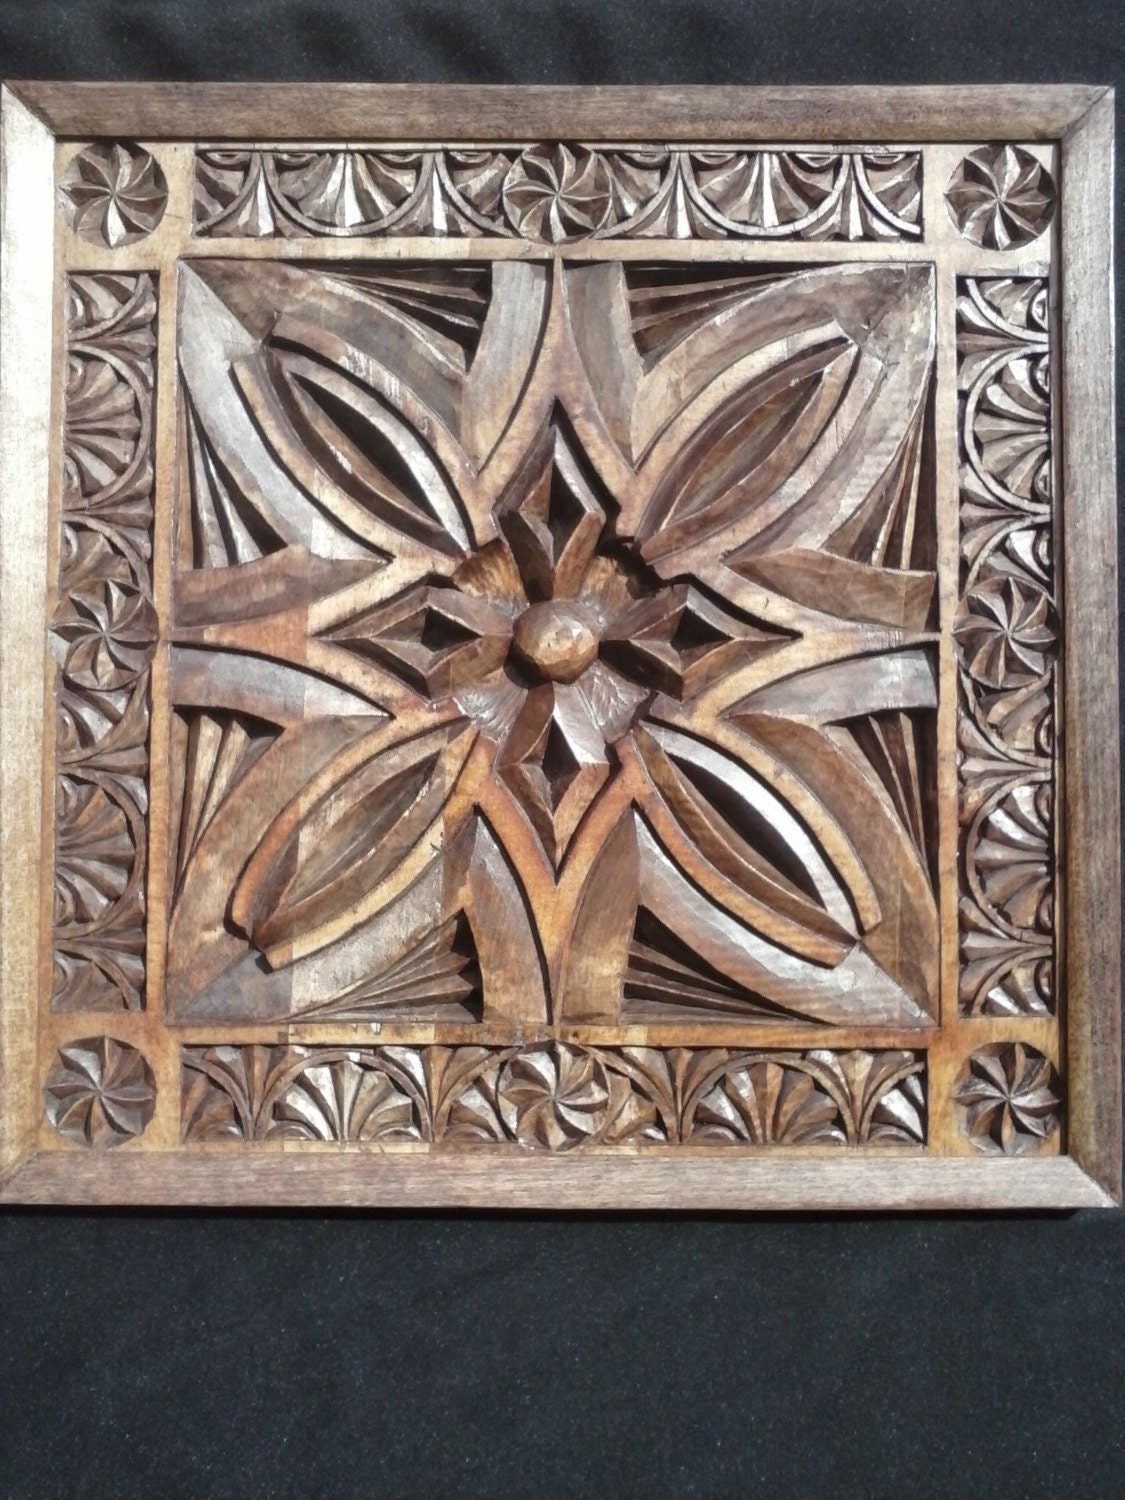 Wood carving wall art panel chip carved by hand in tulip wood - Wood panel artwork ...